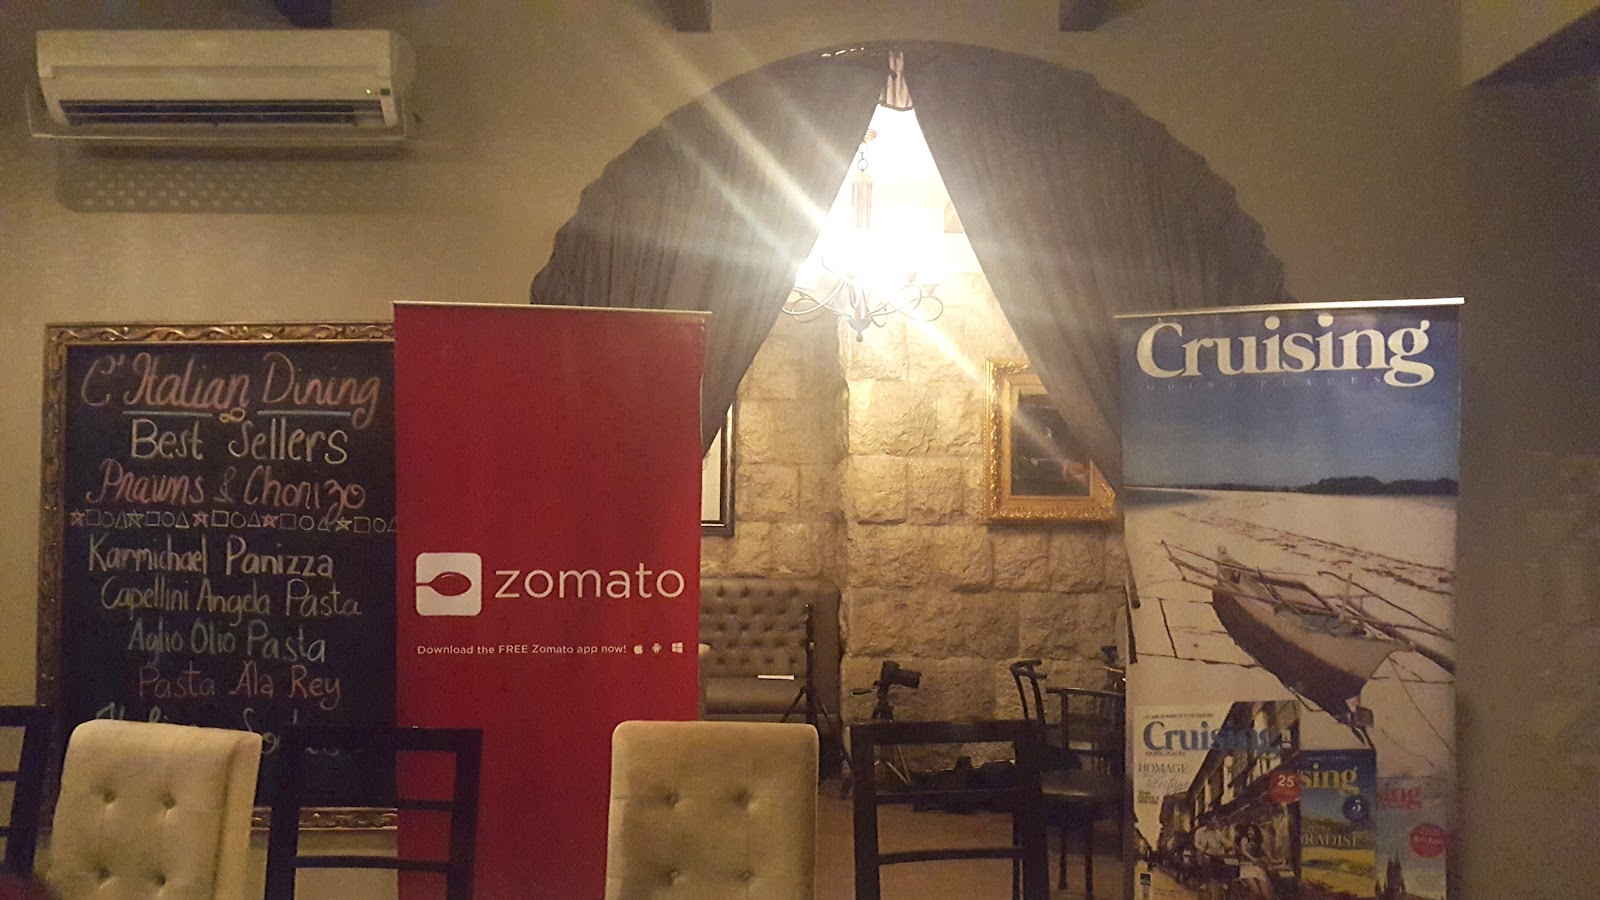 The Event Is Entitled Taste TravelForFood It A Series Of Events For Cruising Magazines 16th Anniversary Where Zomato And Will Visit 16